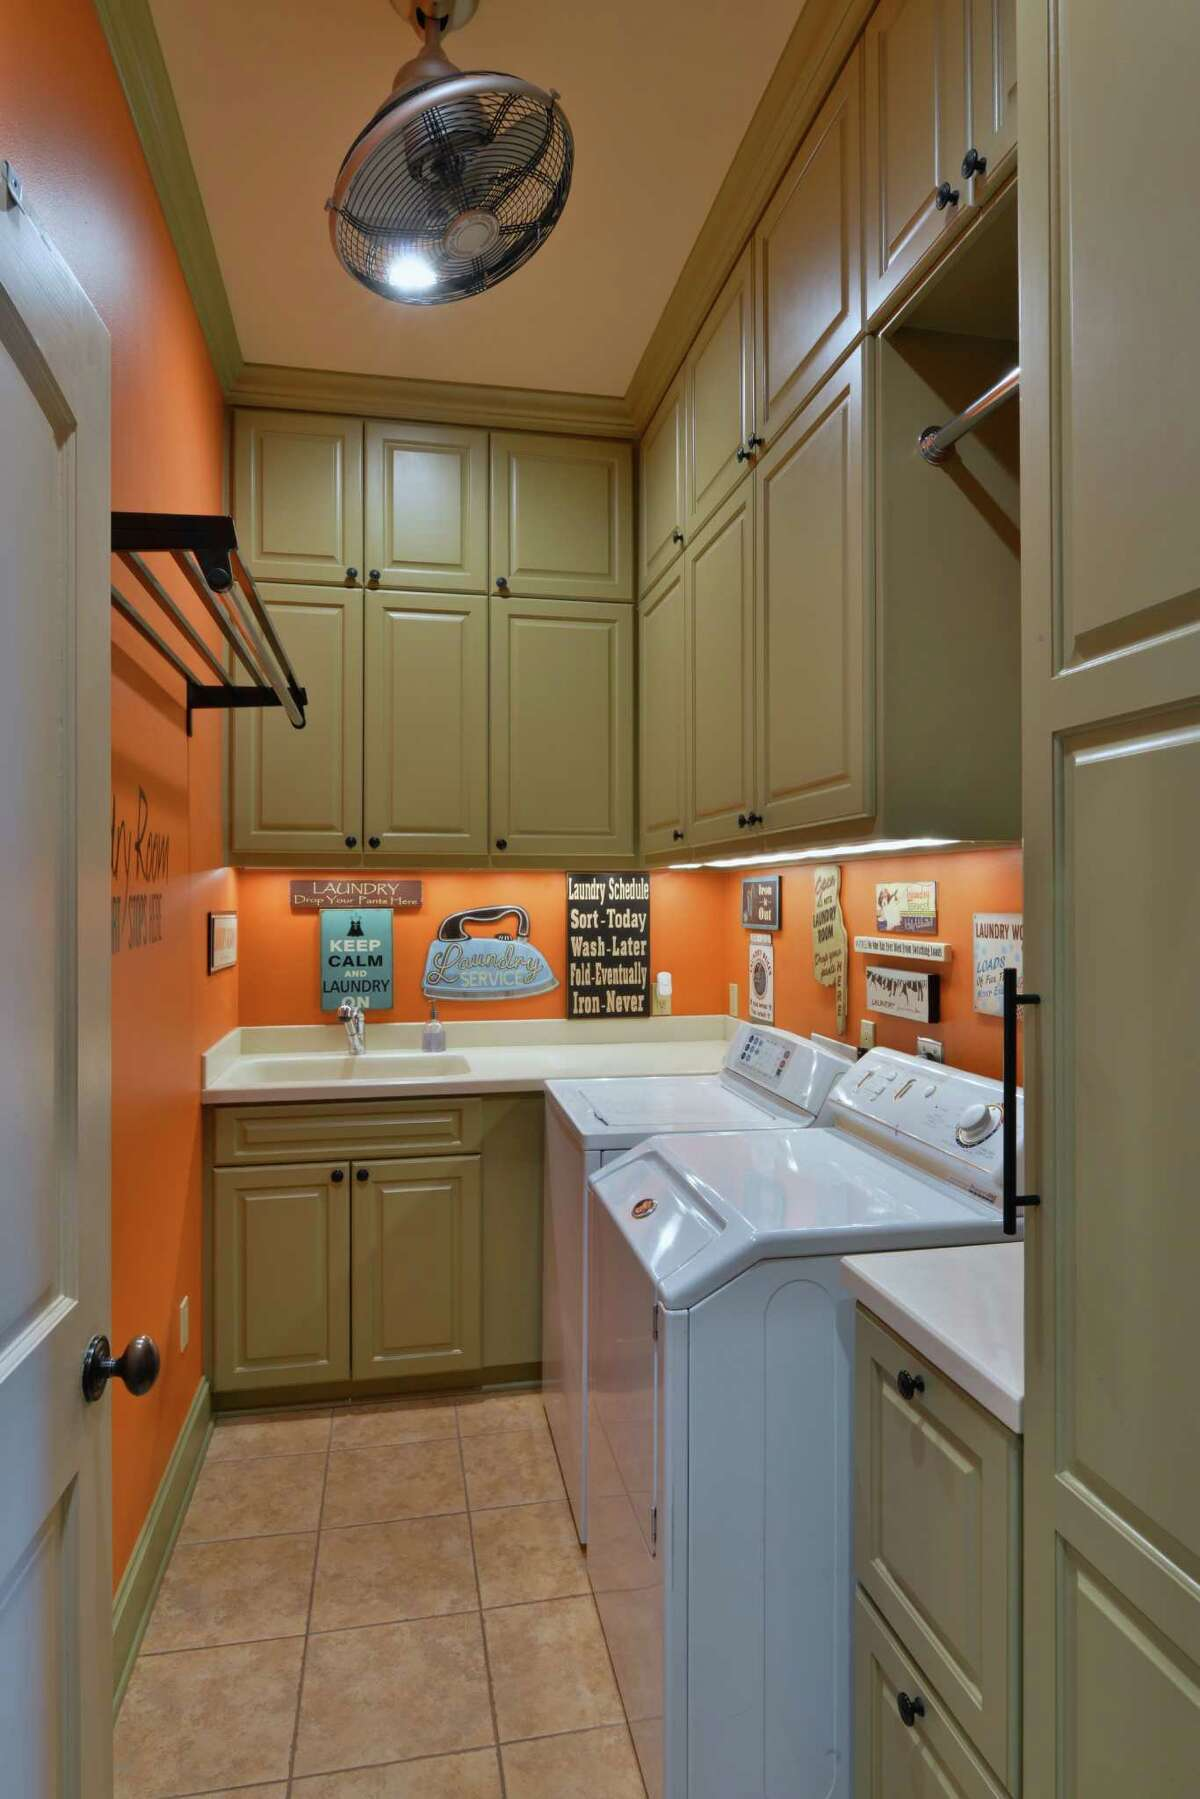 In this Nottingham Forest home in far West Houston, designer Chandra Stone carved out space on the first floor for a long, narrow utility room with plenty of storage. She installed two hanging bars and filled the room with drawers and cabinets.